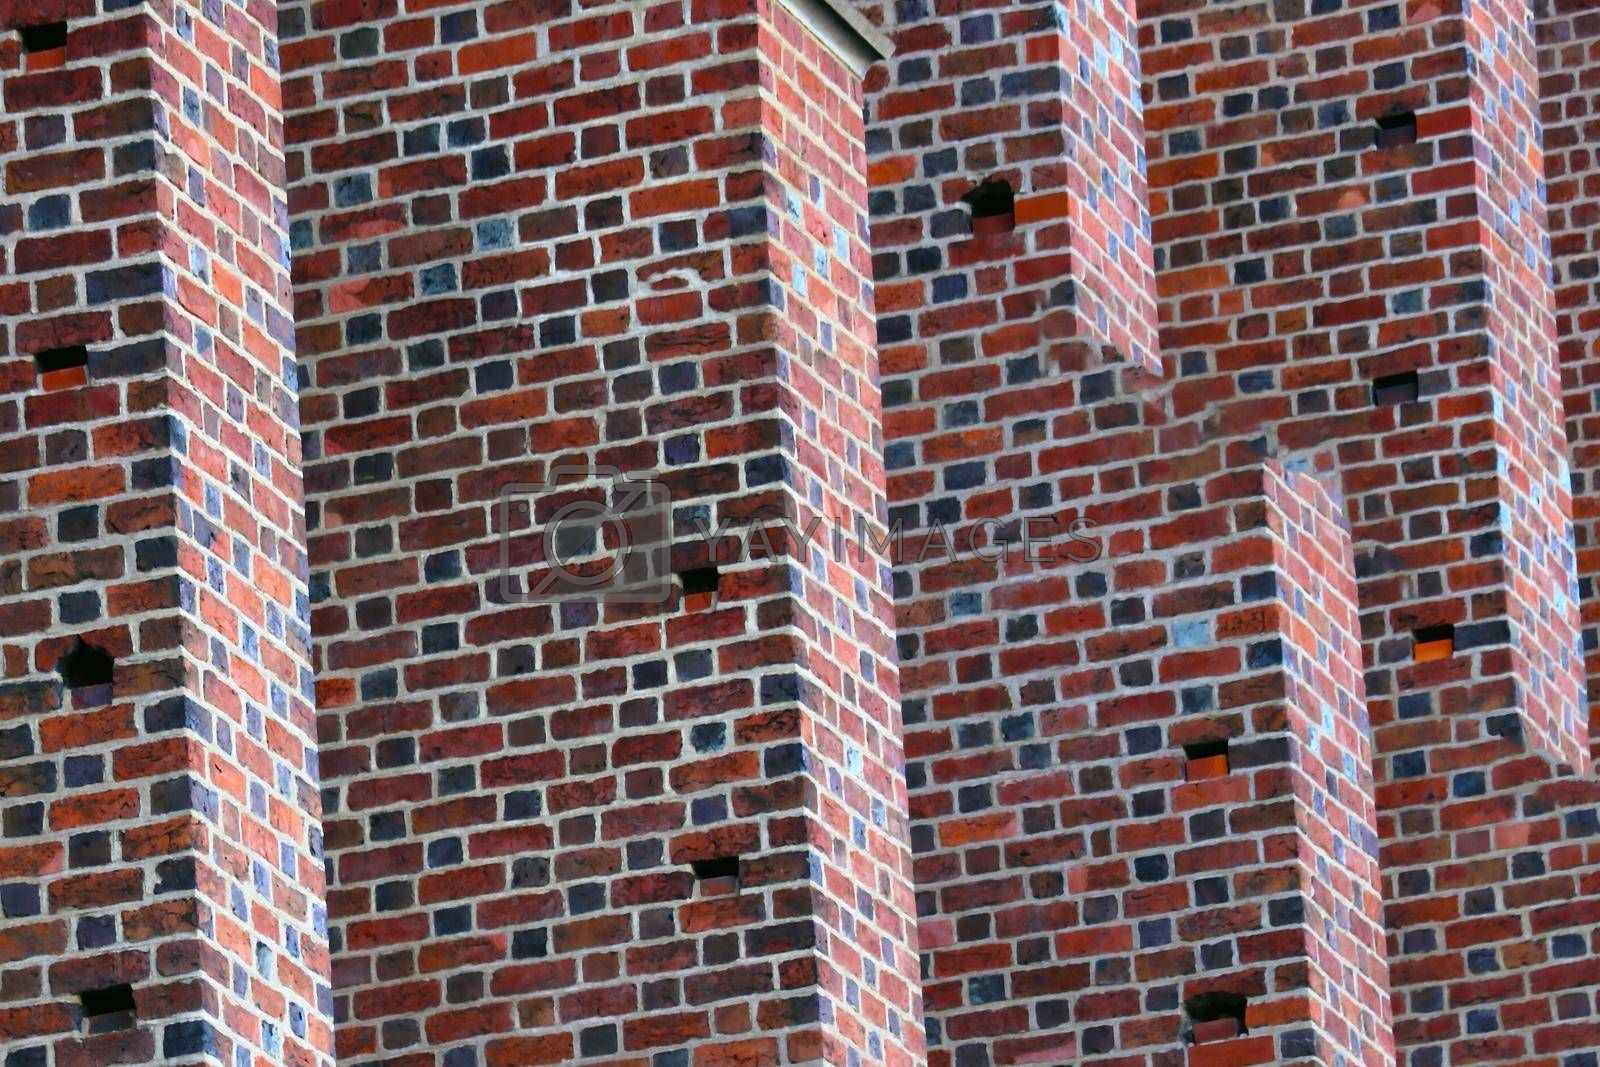 Royalty free image of Close-up on the wall of a red brick building. Background. by kip02kas